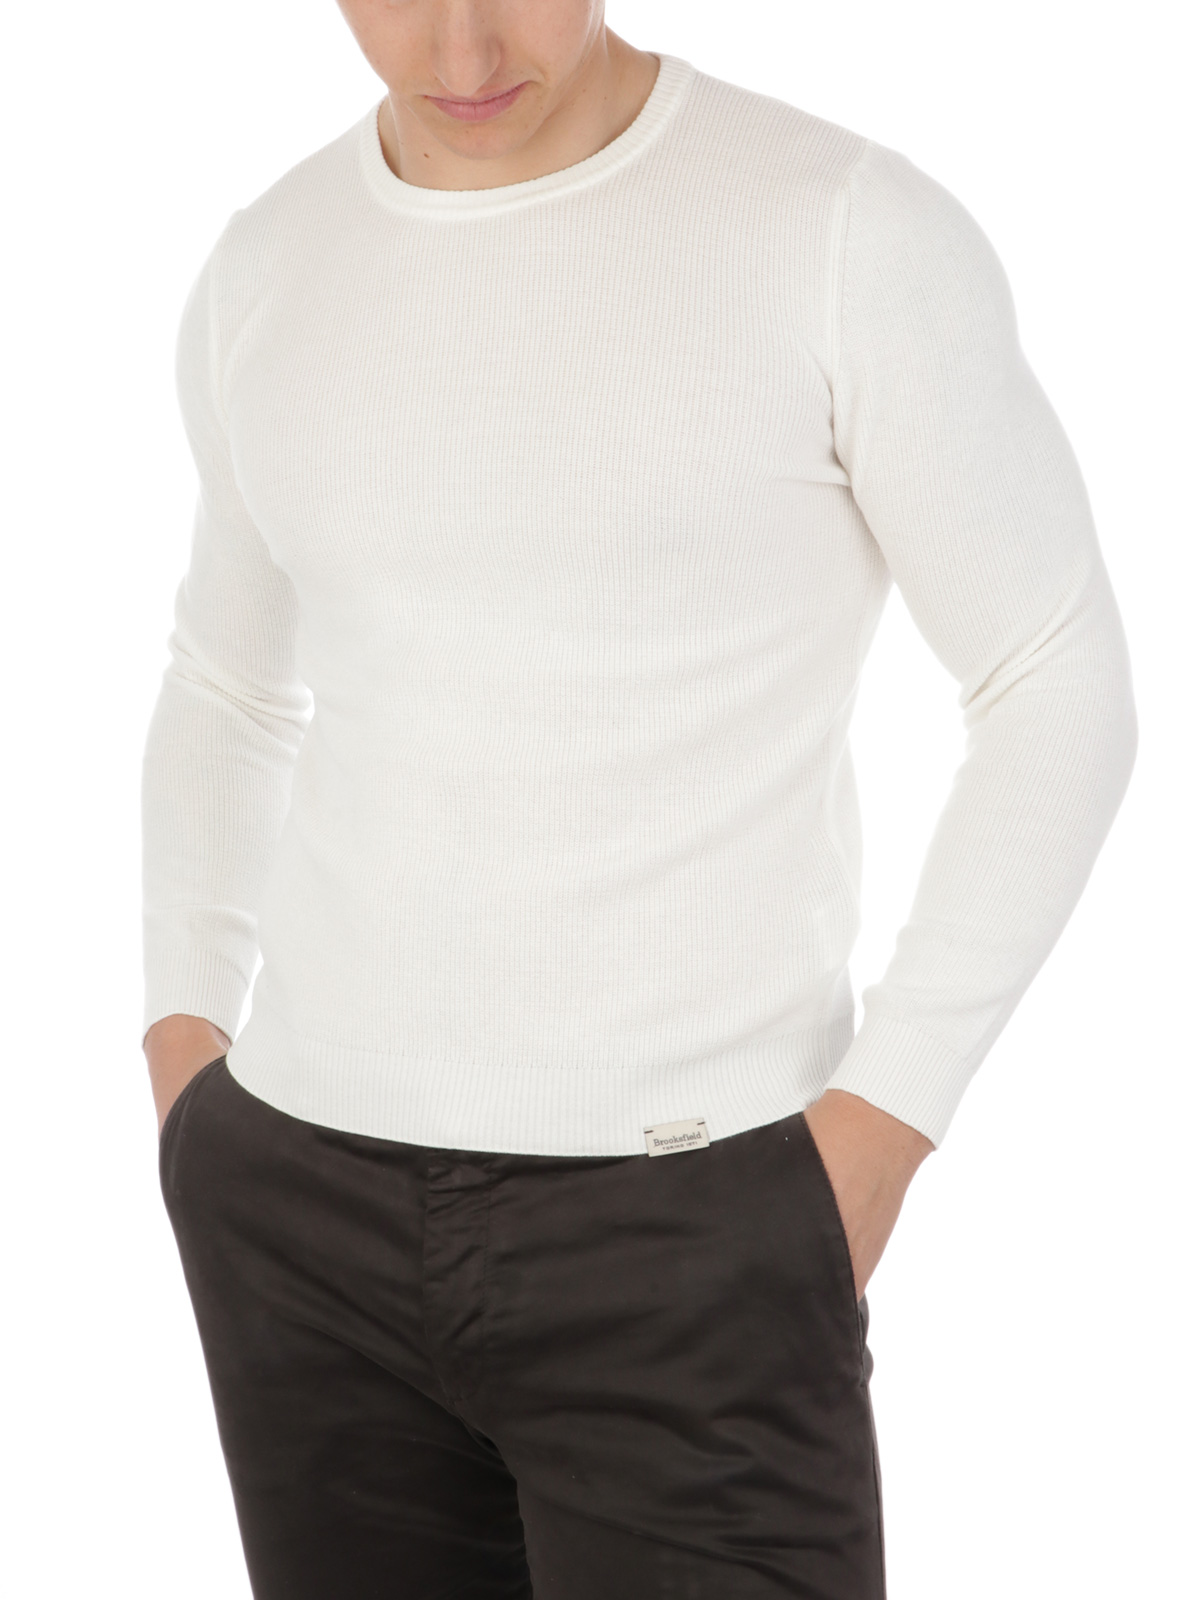 Picture of BROOKSFIELD | Men's Cotton Yarn Sweater